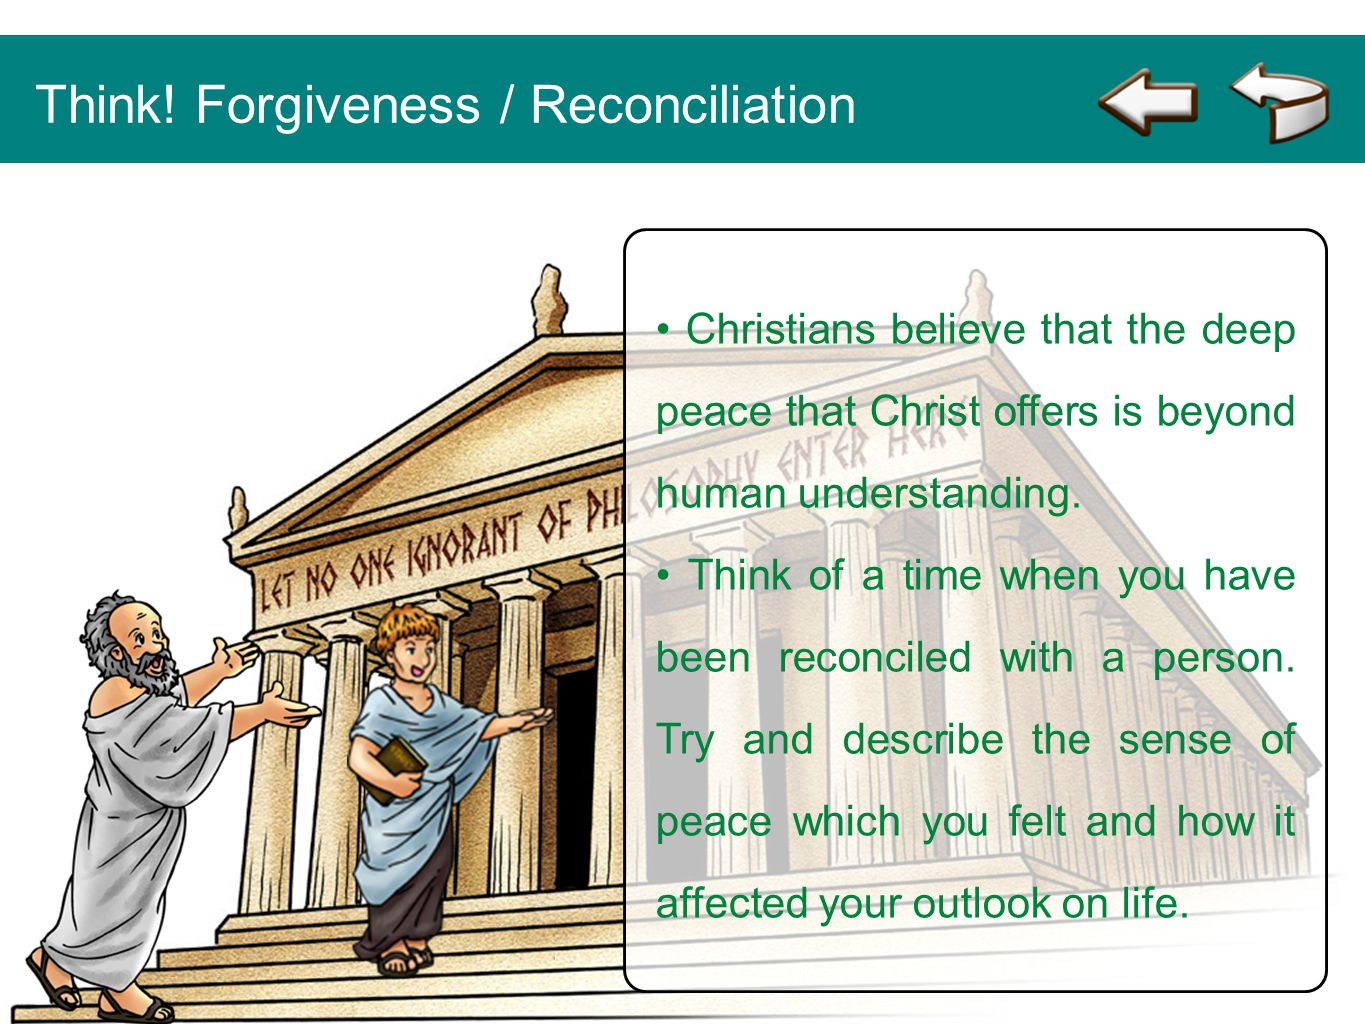 Think! Forgiveness / Reconciliation